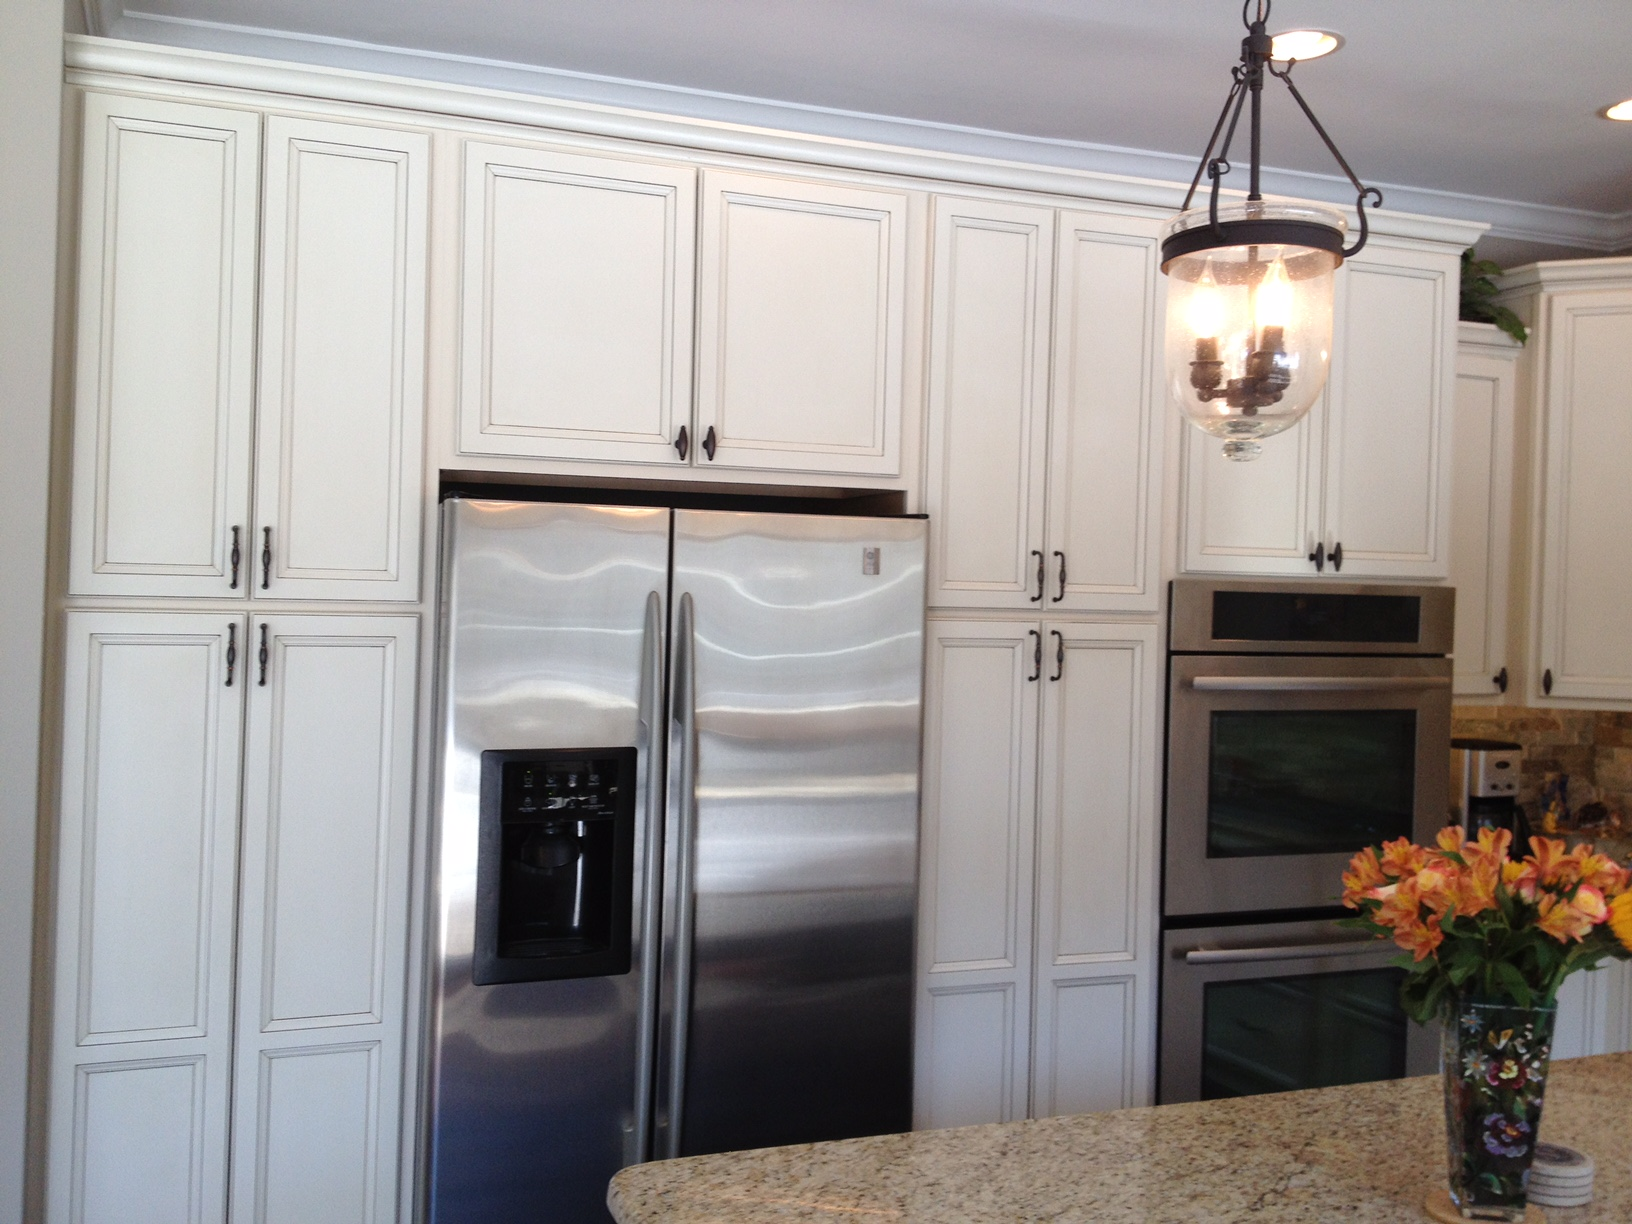 Stainless refrigeration and tall cabinets